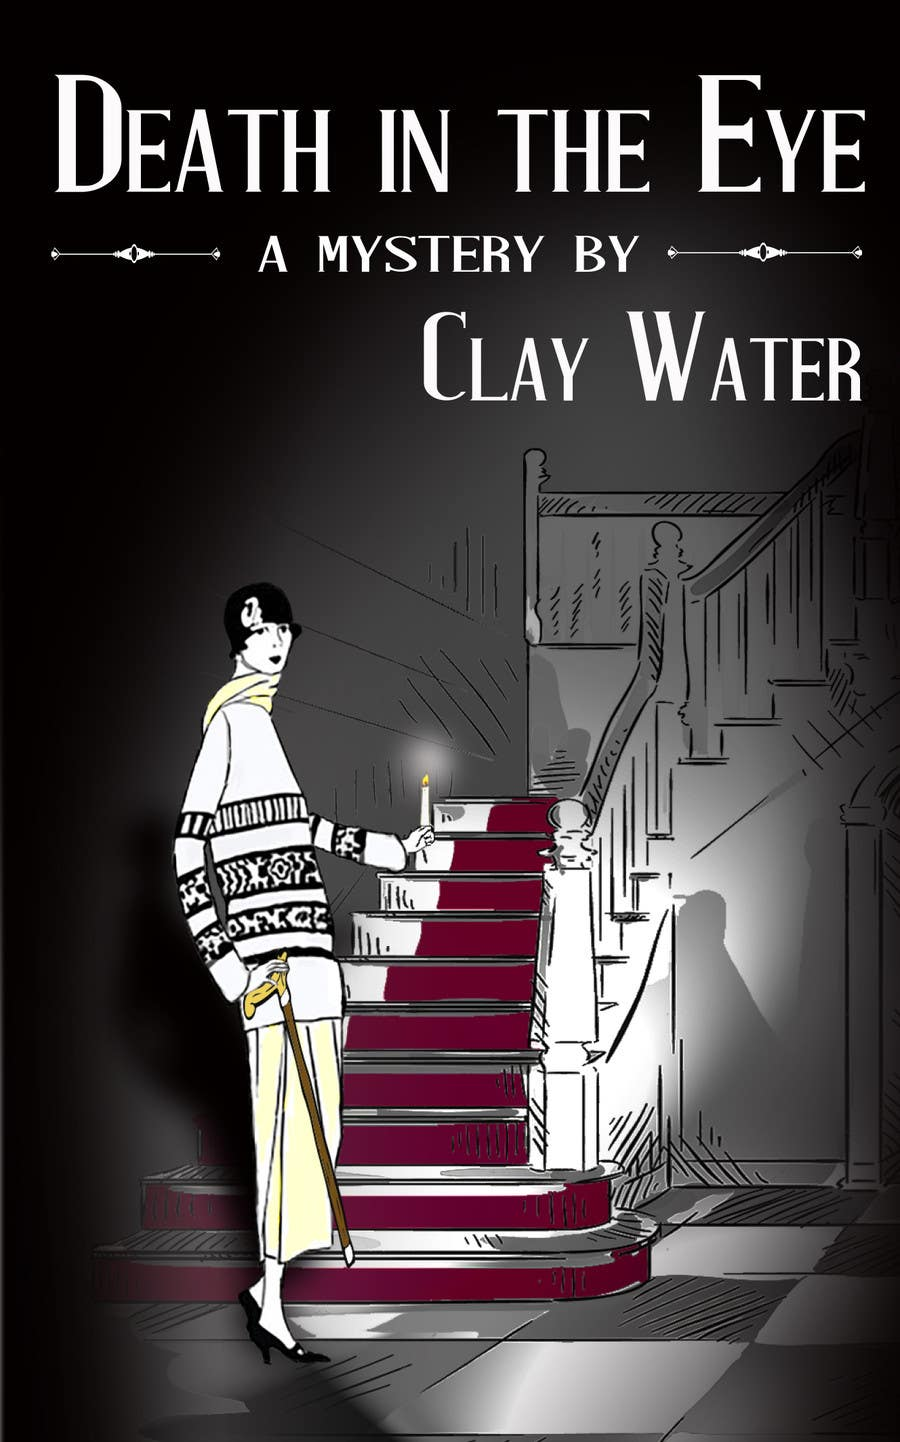 Proposition n°7 du concours Ebook cover for old-fashioned mystery novel